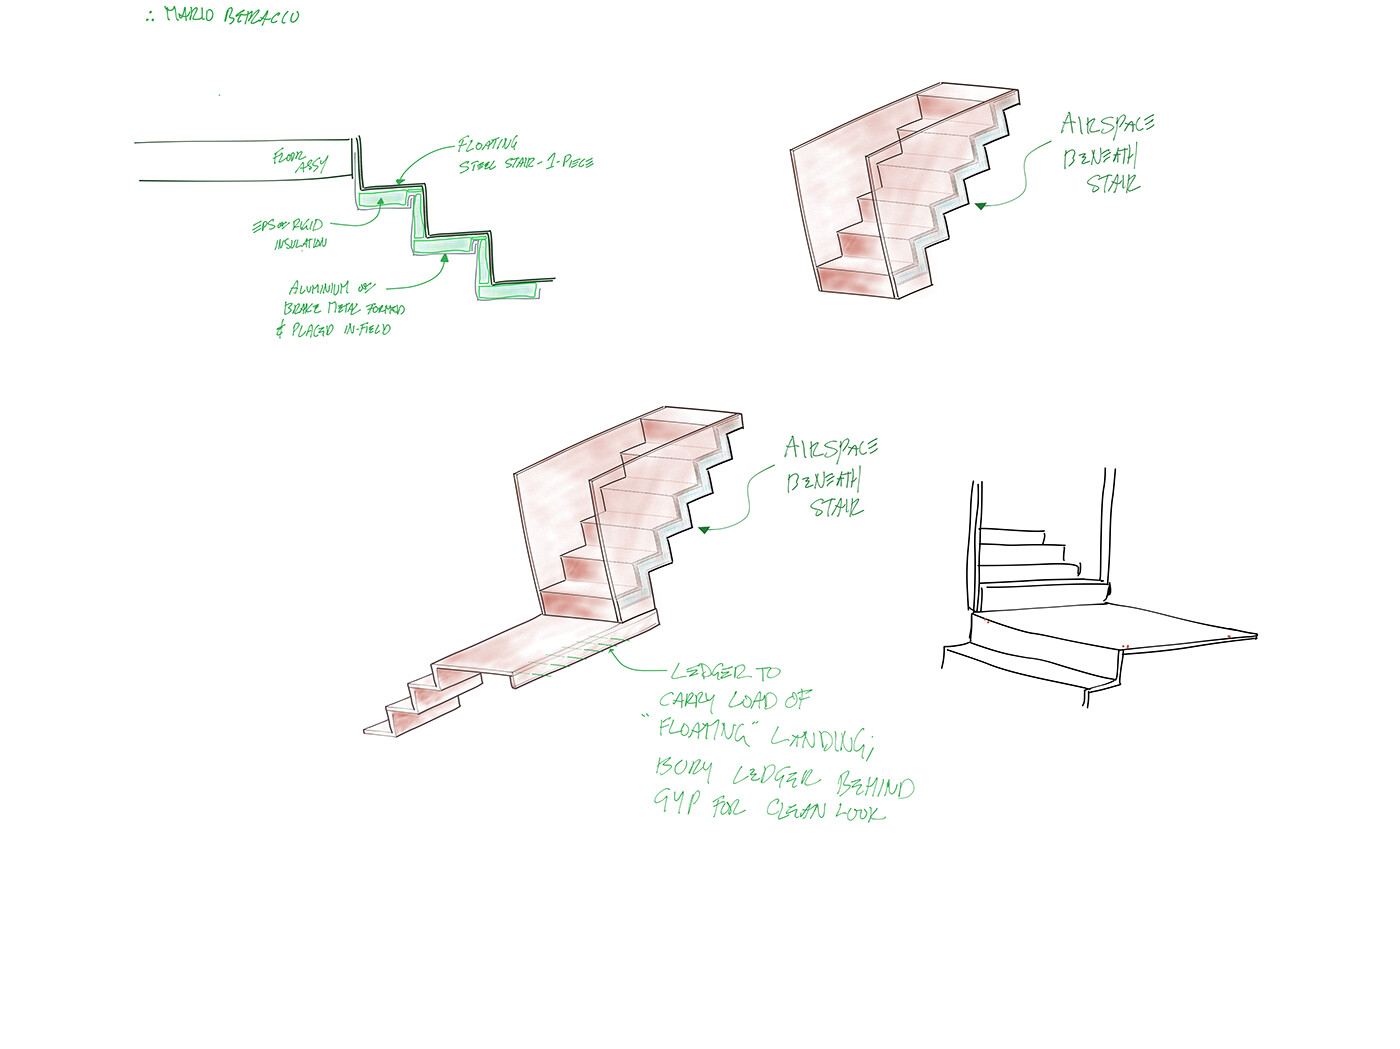 Here is the hand-drawn sketch originating those stair ideas: as you can see, computers are not required for 3D thinking. That's how a designer should think to begin with!